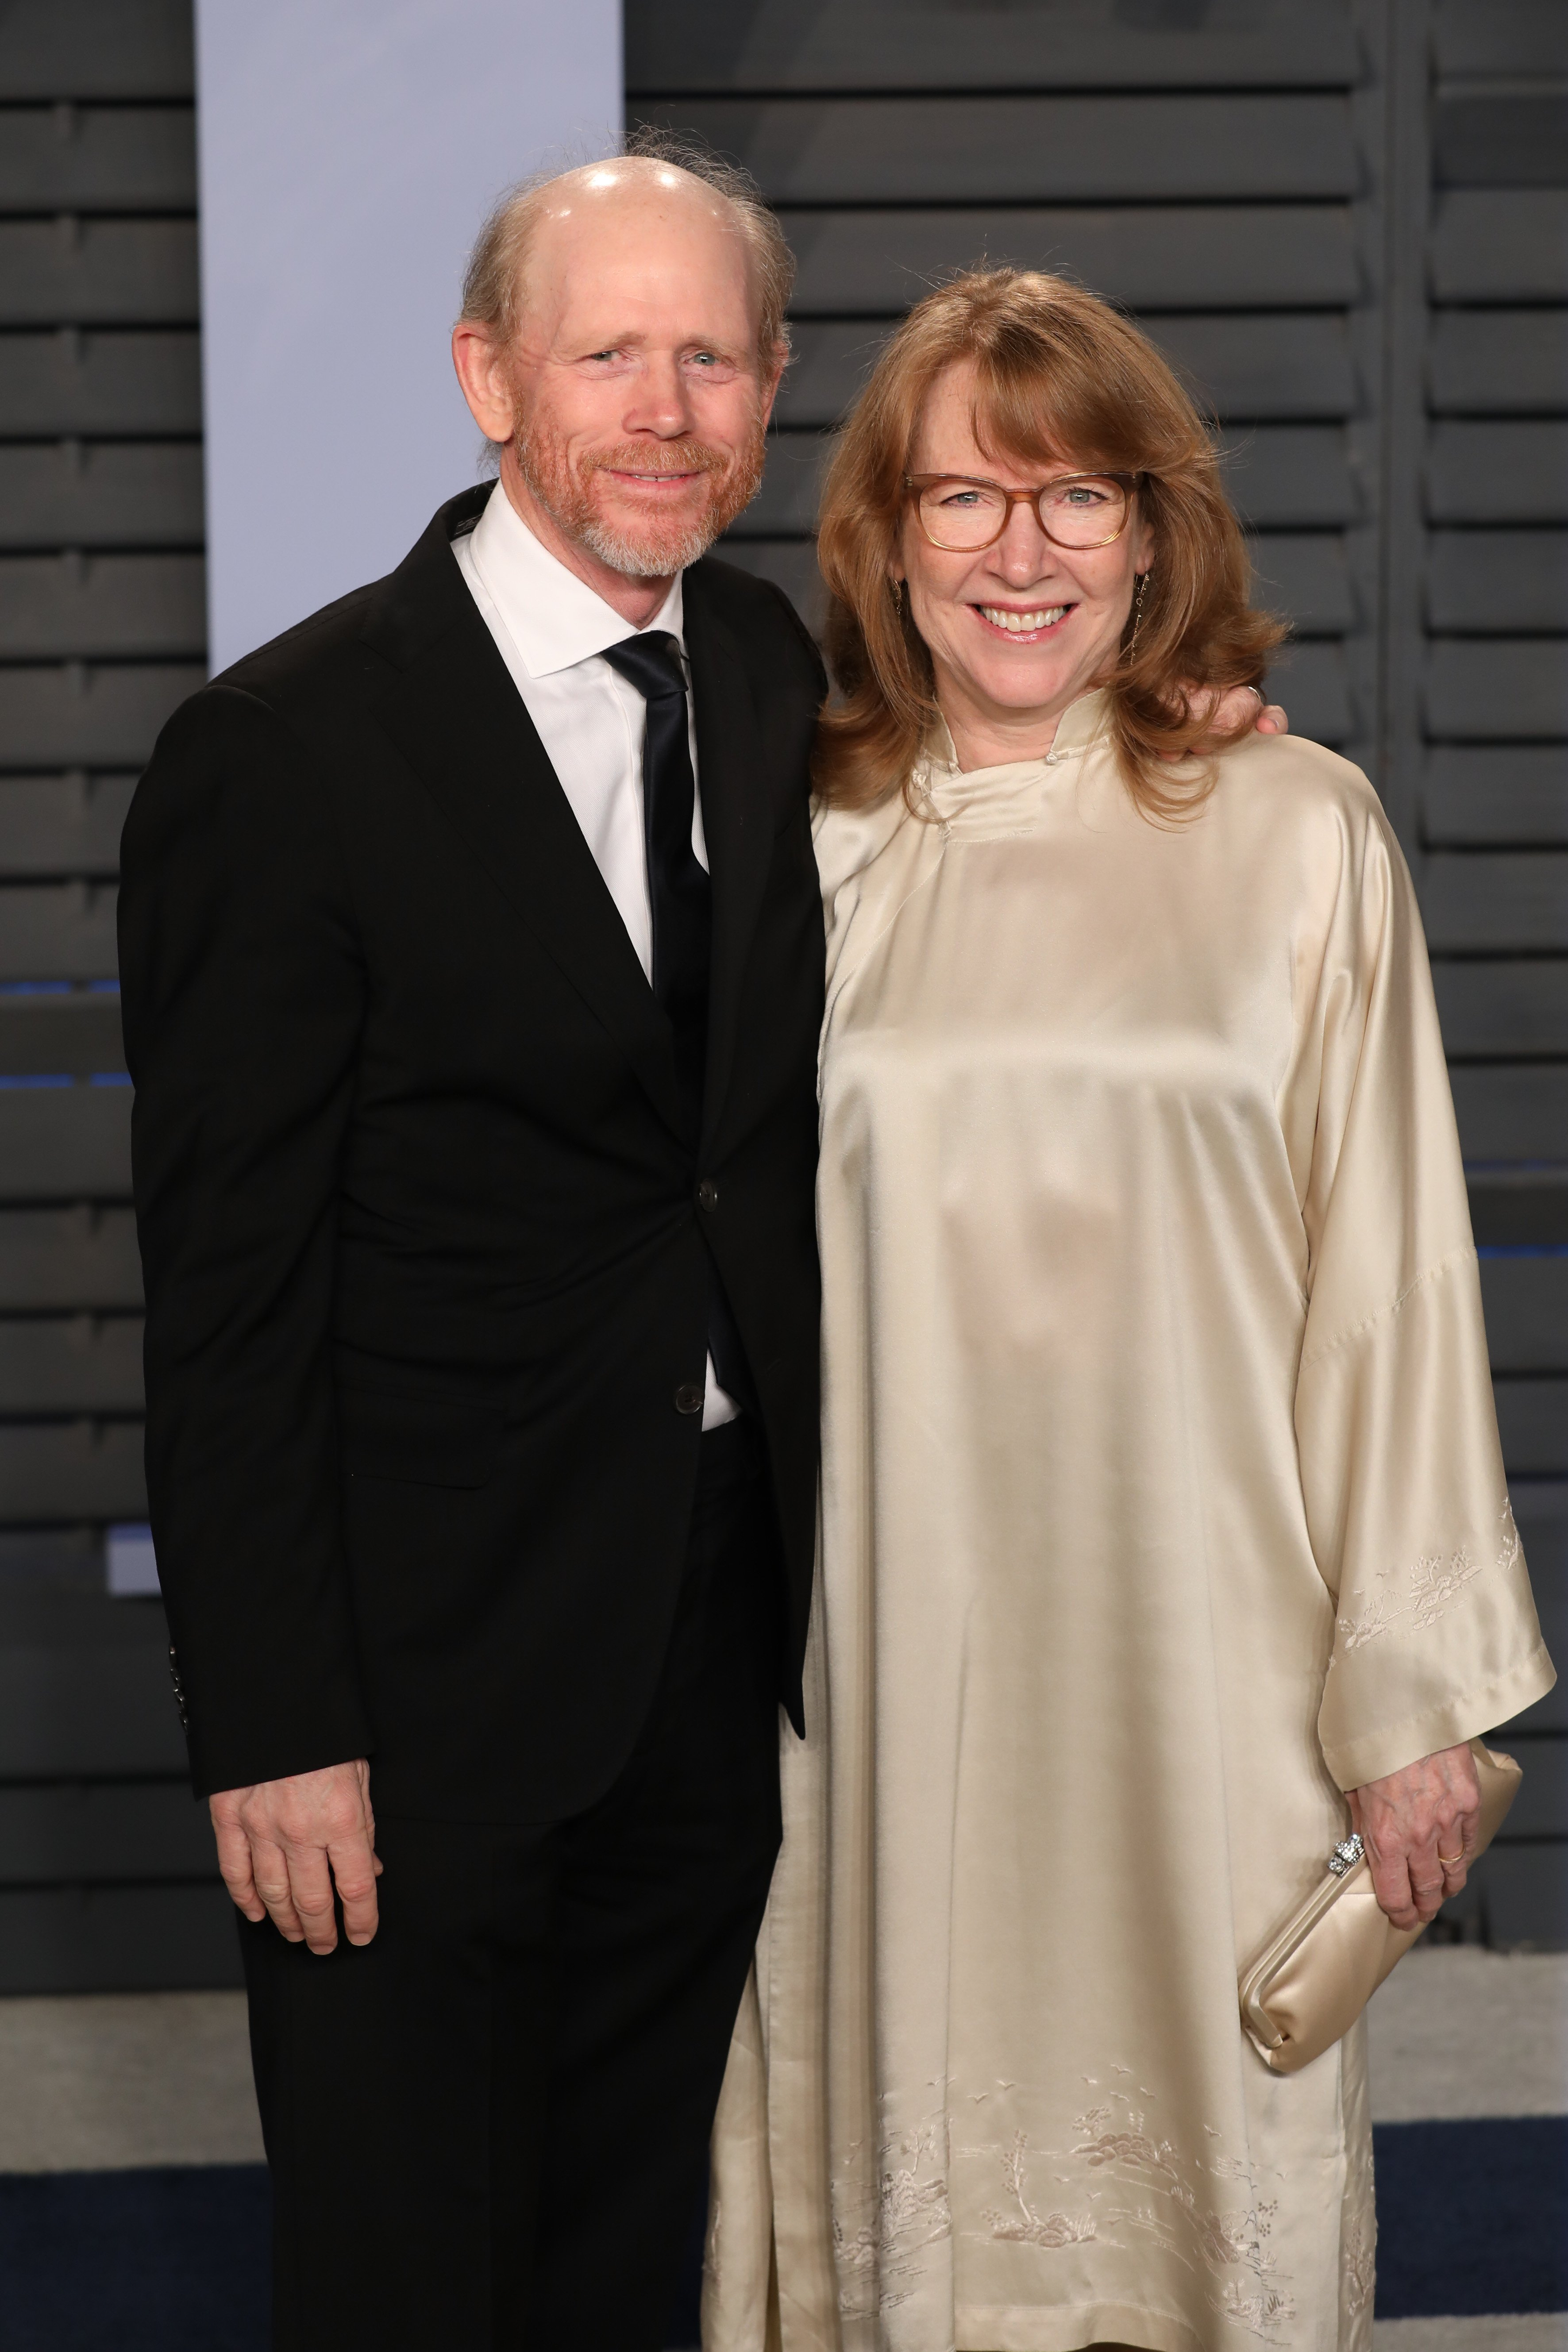 Ron Howard and Cheryl Howard attend the 2018 Vanity Fair Oscar Party on March 04, 2018, in Beverly Hills, California.   Source: Getty Images.